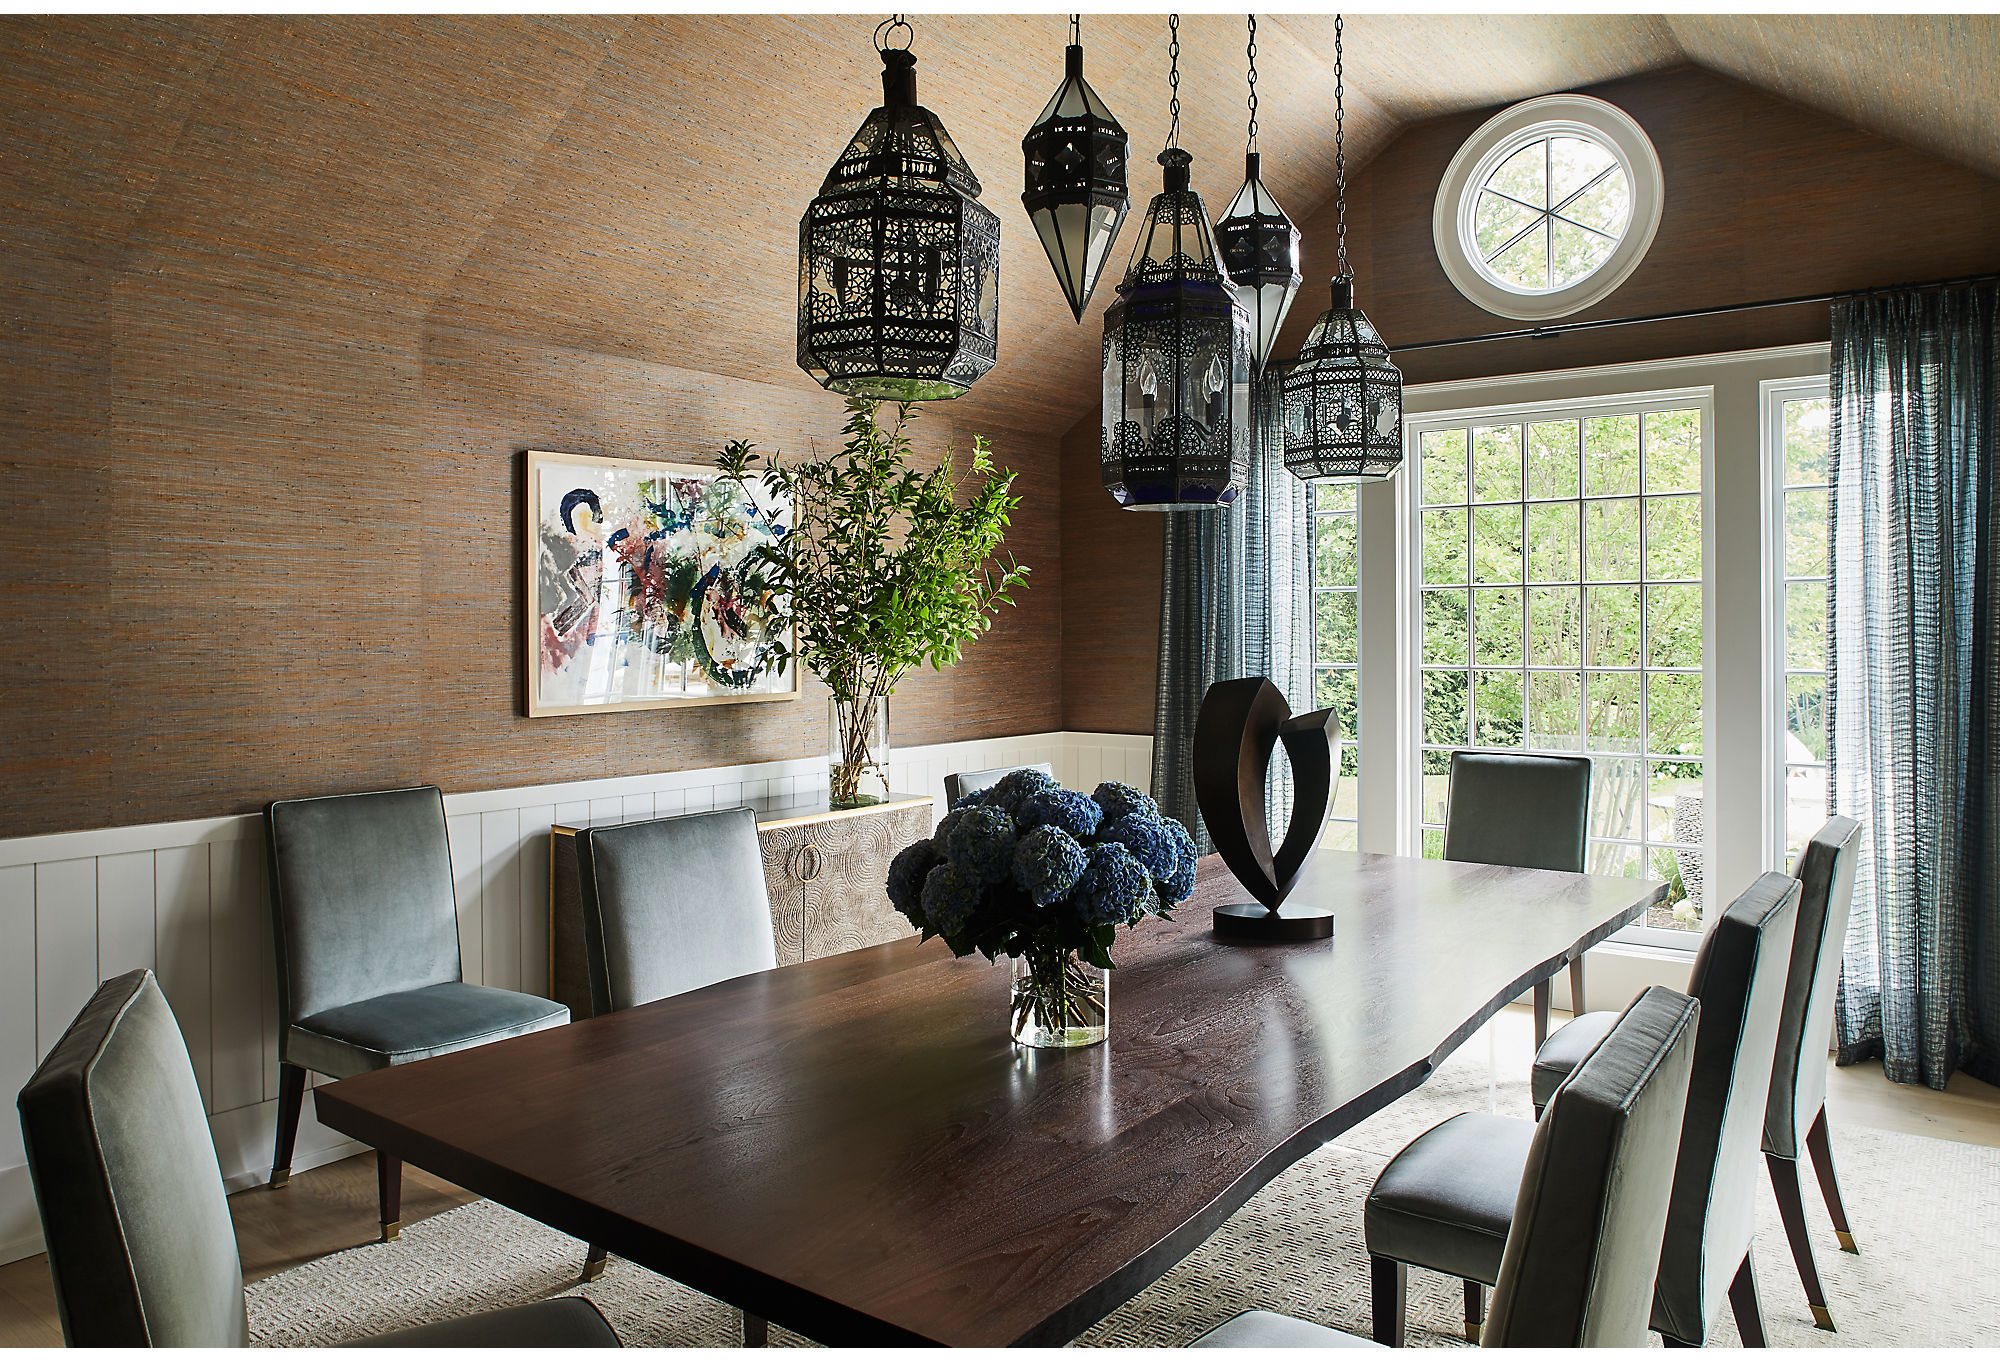 Mara and Jesse kept the owners' antique lights but gutted everything else in the dining room. The color palette feels classic with moody browns and soft blue accents, but the furniture leans more modern.